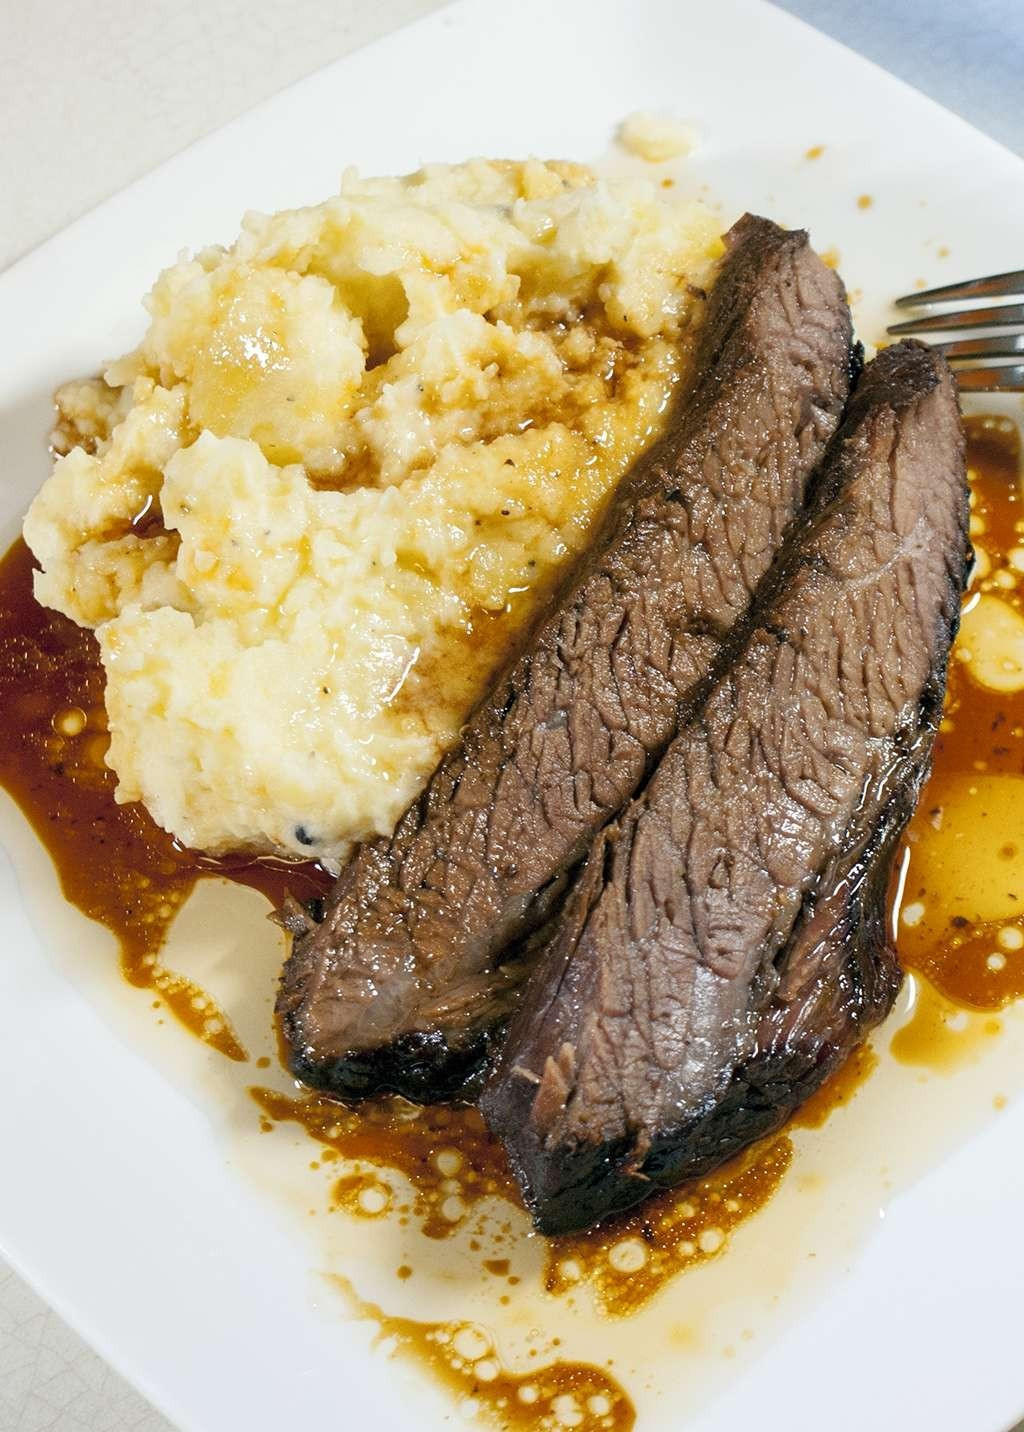 Beef Brisket Recipe Oven  Oven Smoked Brisket Texas Style Brisket Without a Smoker